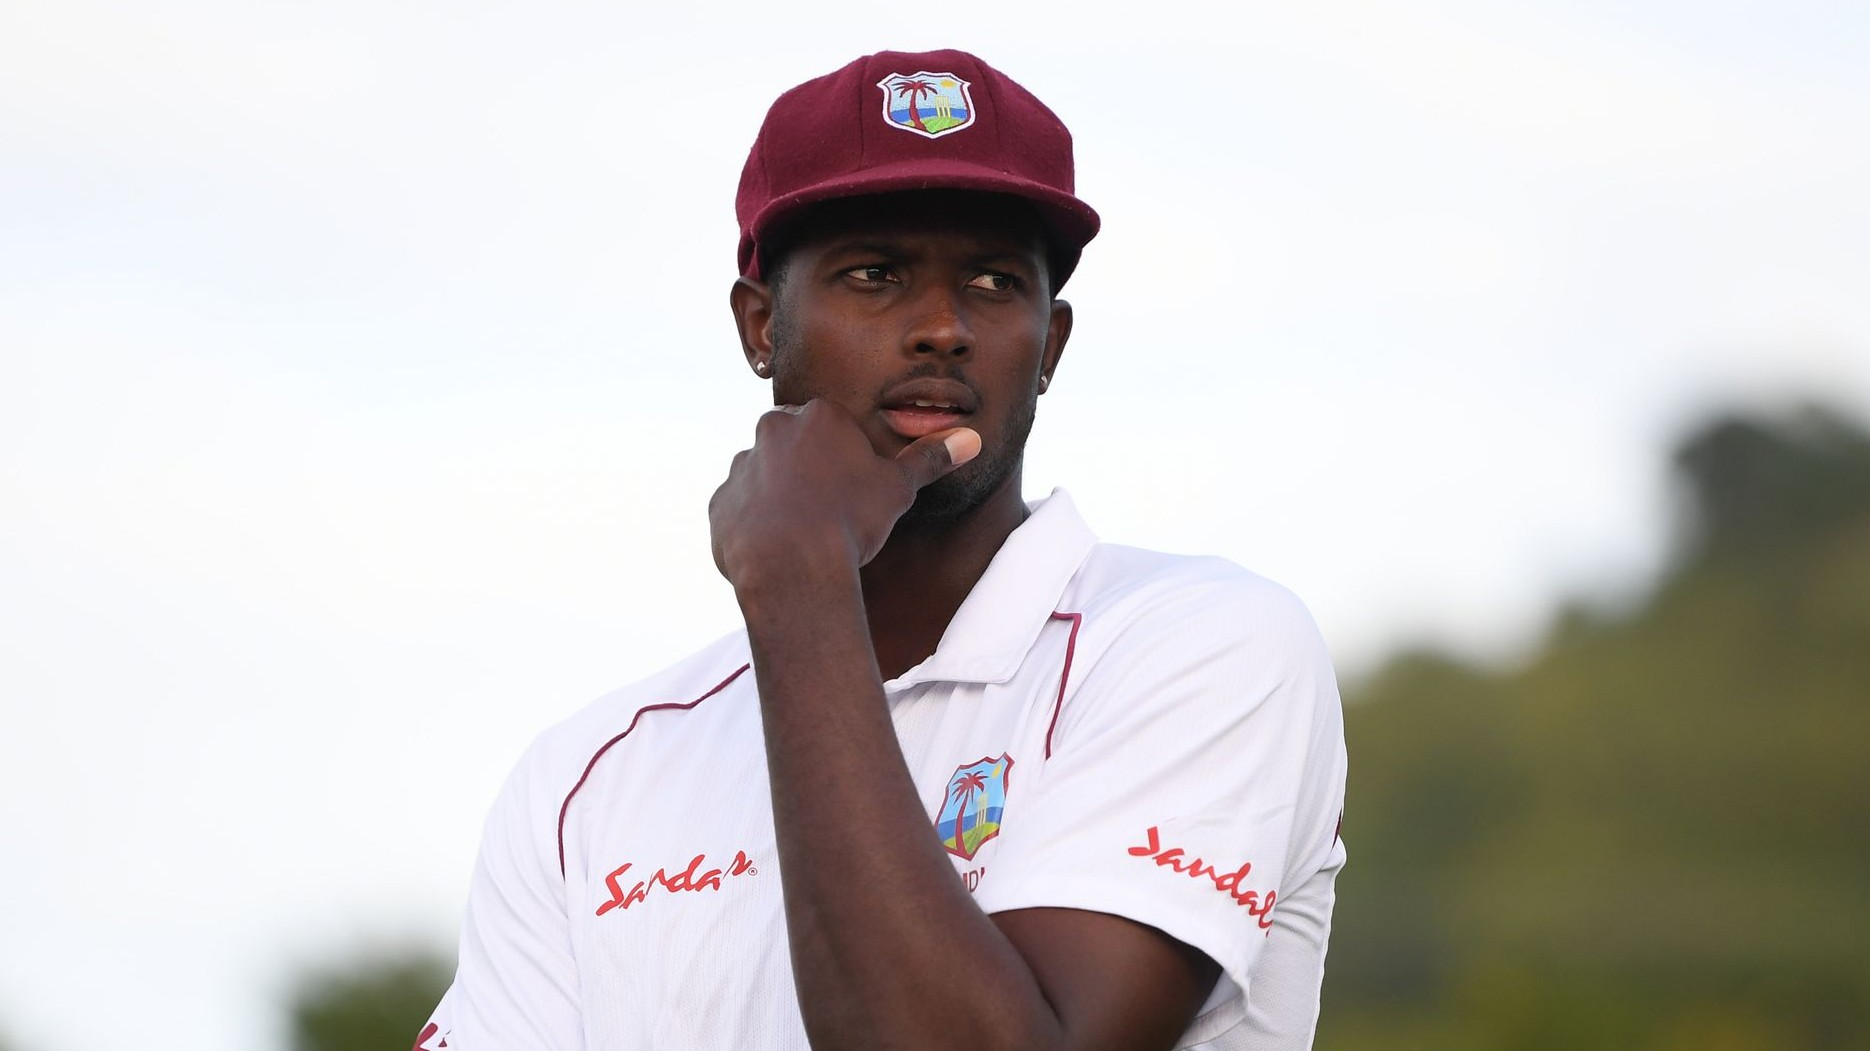 ENG v WI 2020: Windies team mulling taking the knee in support of Black Lives Matter campaign says Jason Holder